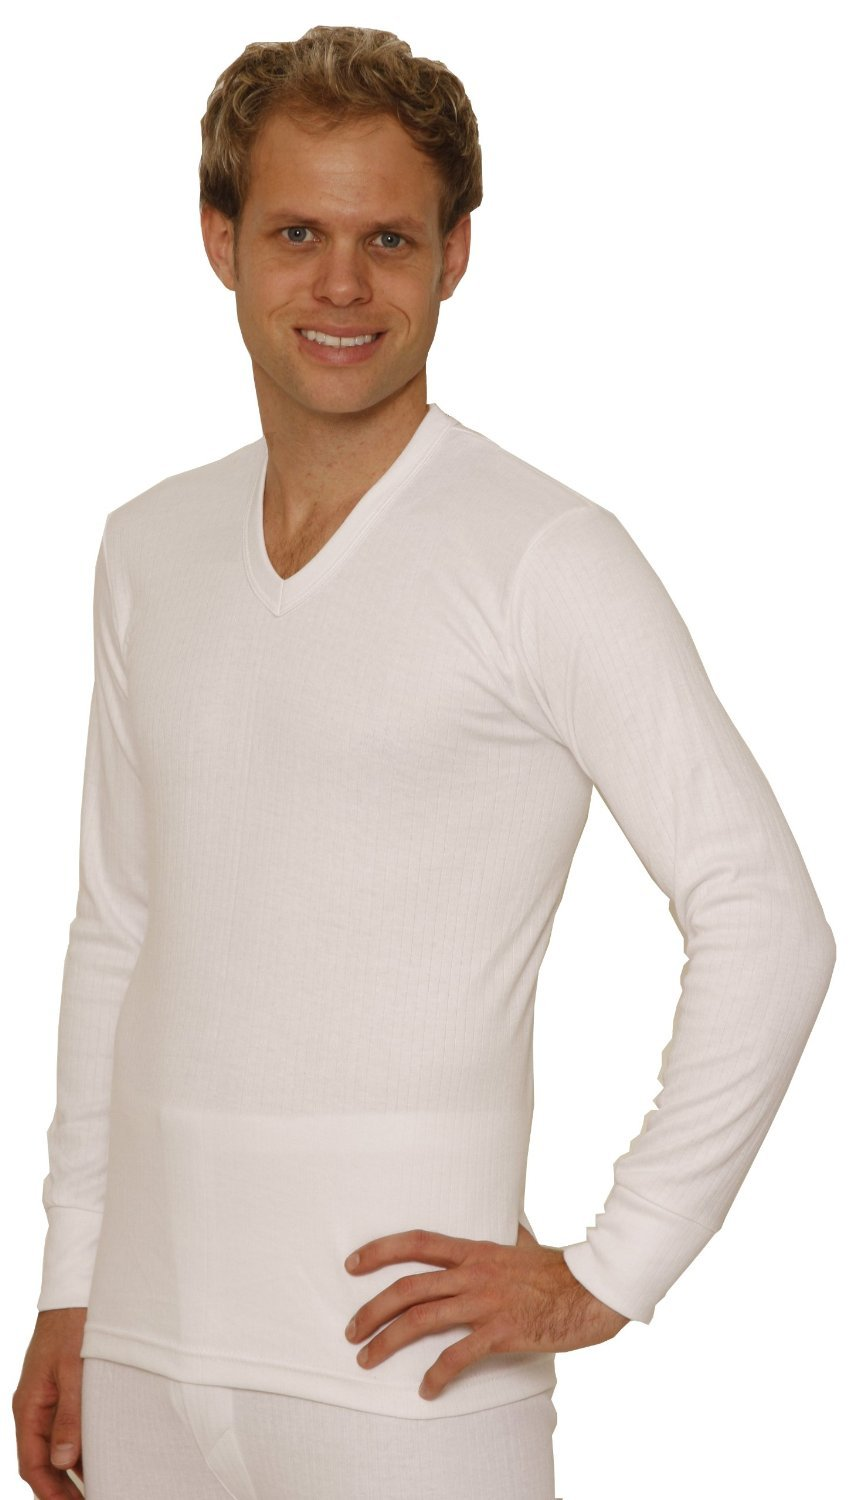 Octave Mens Thermal Underwear LS V-Neck T-Shirt/Vest/Top [White, XXL] by Octave